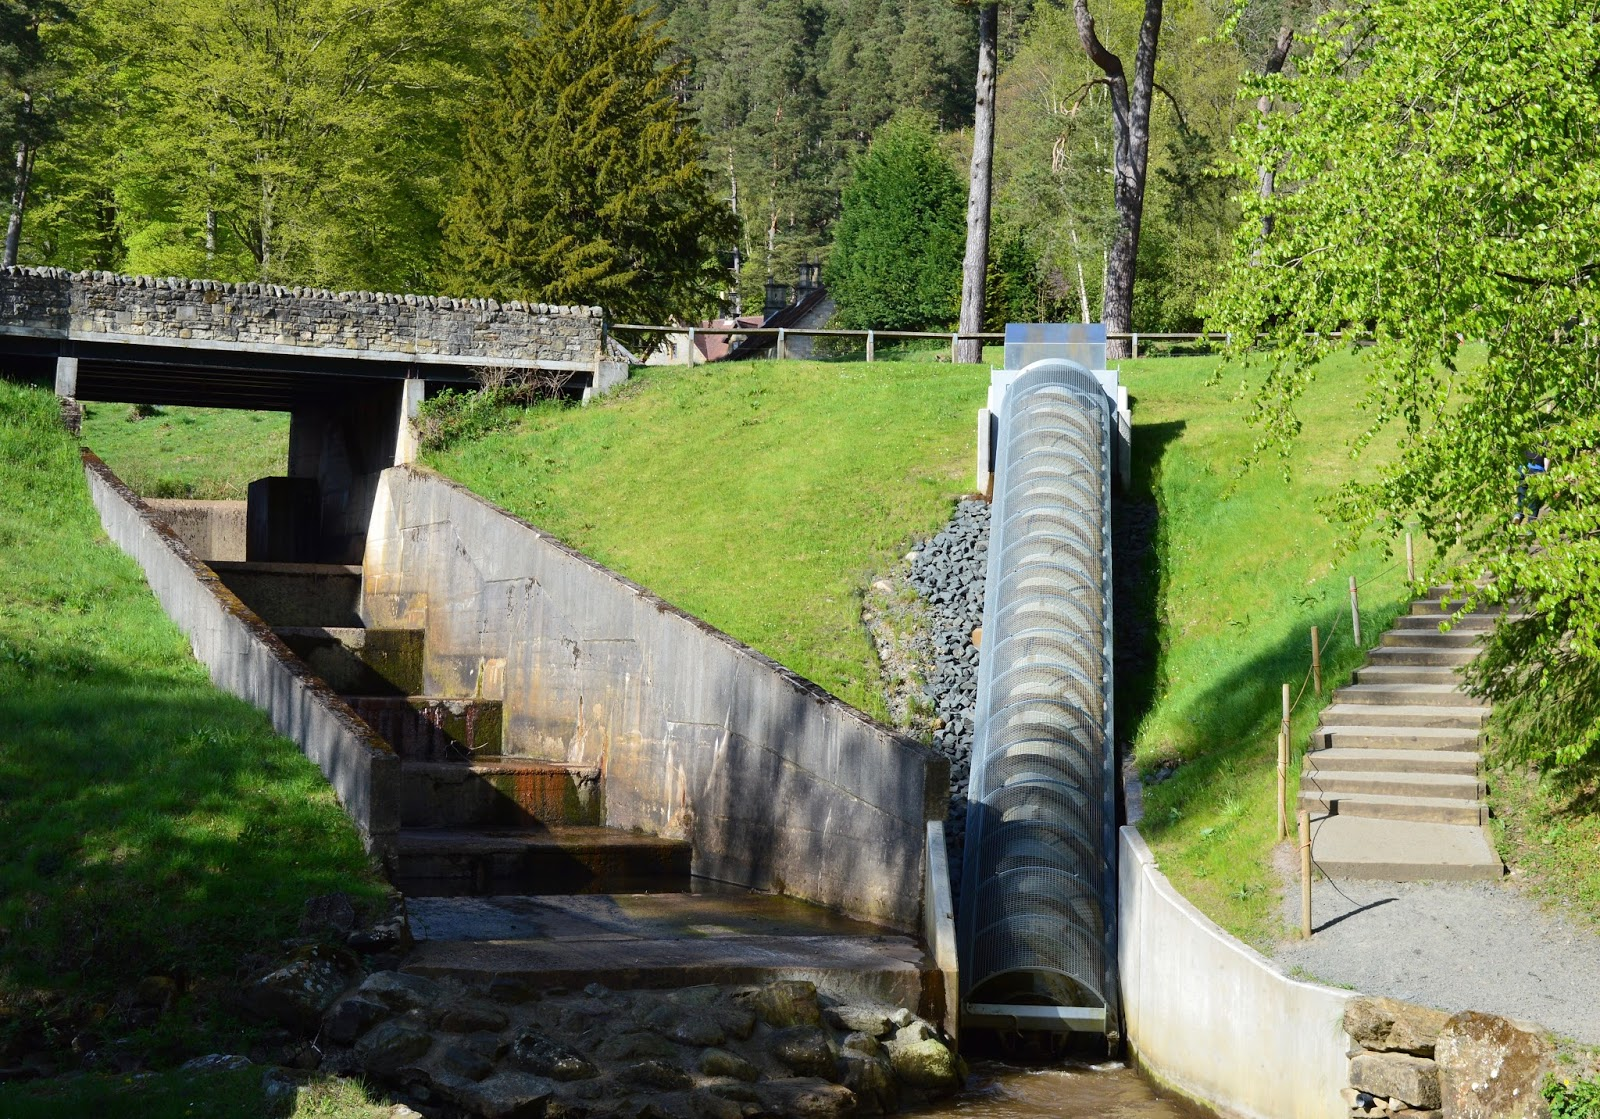 The Labyrinth at Cragside - archimedes screw